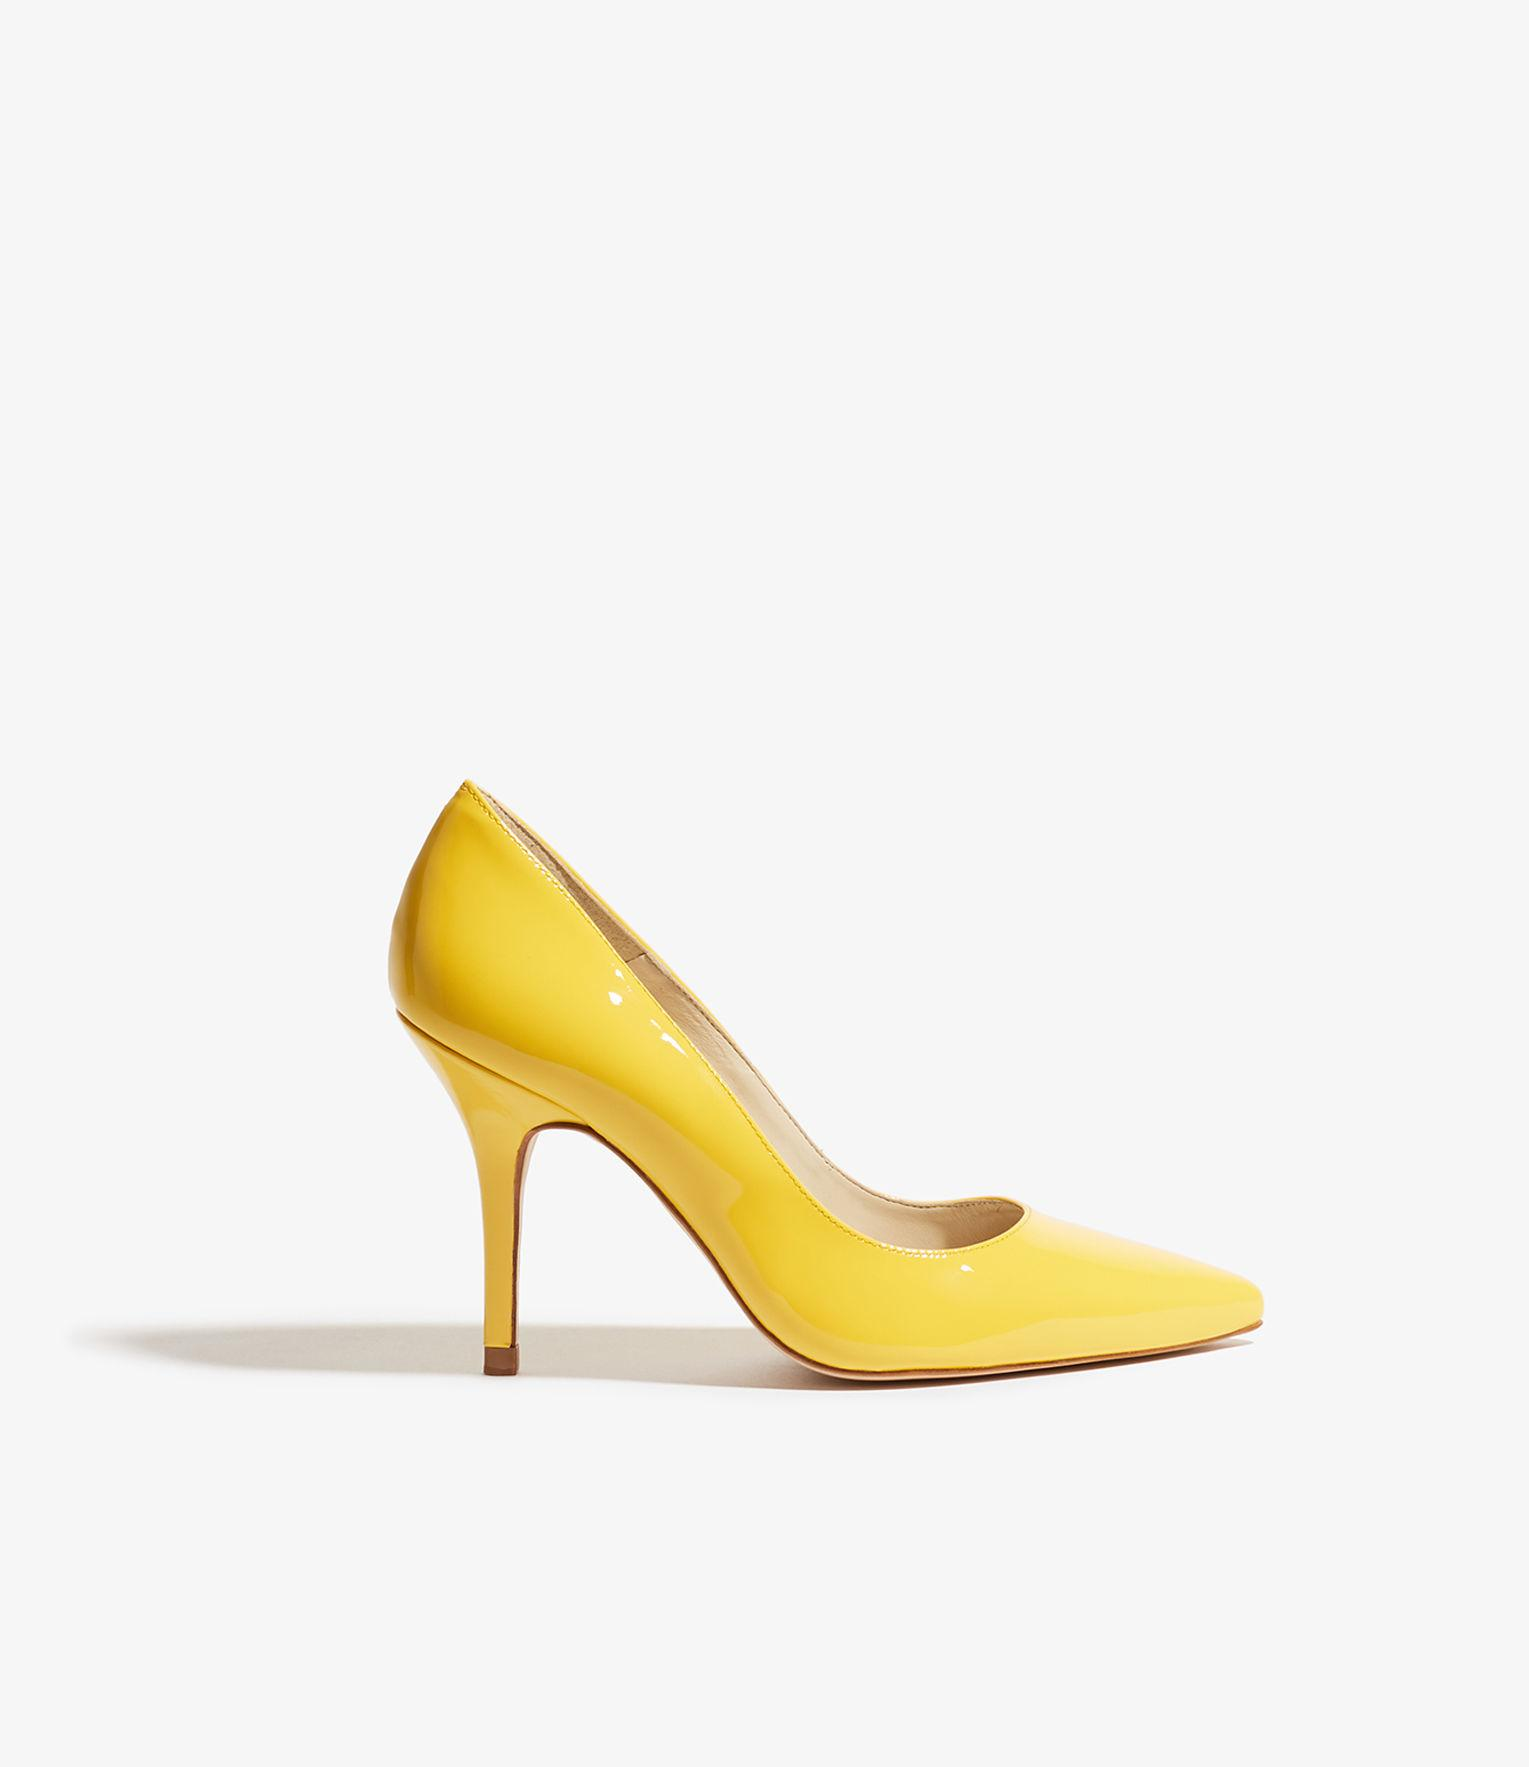 Official For Sale Karen Millen Patent Collection Stiletto Heeled Court Shoes Largest Supplier Online Free Shipping Choice Clearance Manchester Great Sale Genuine Sale Online 5iQHDR